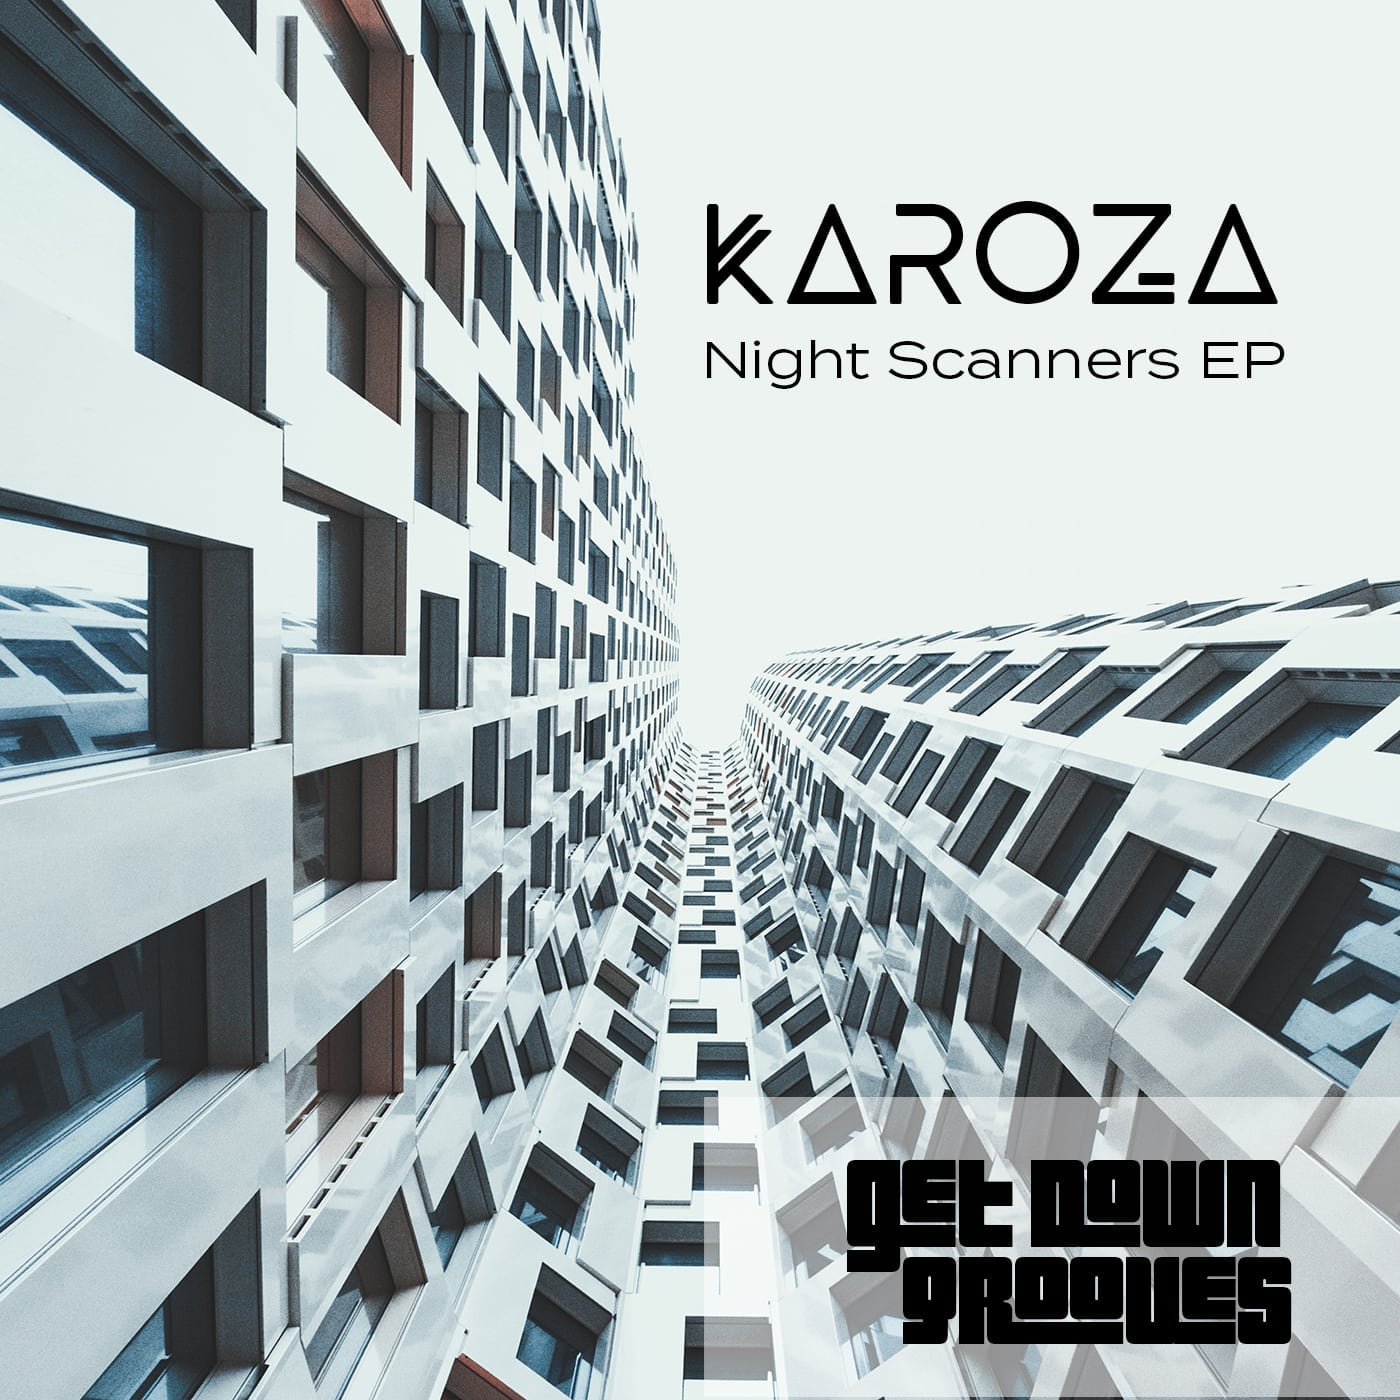 Karoza - Night Scanners EP